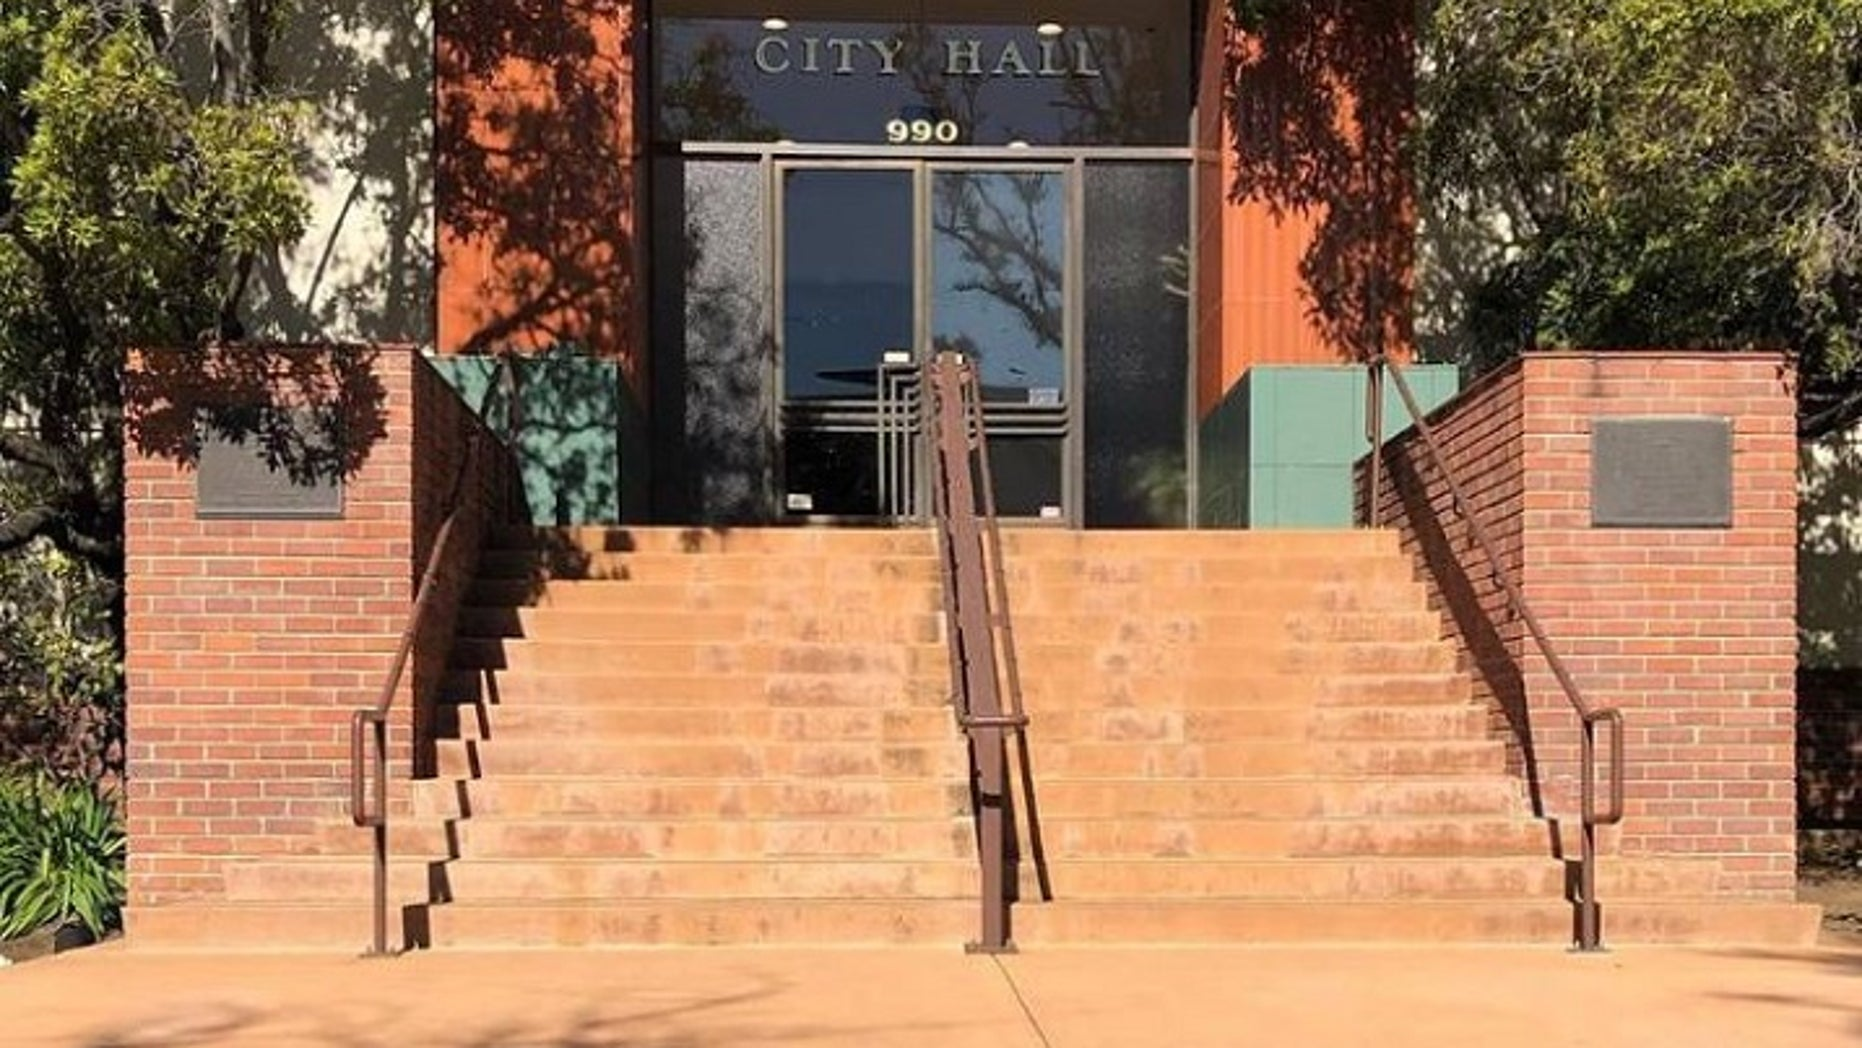 Westlake Legal Group a6747722-Capture City employee on leave after 2016 video shows him knocking out special-ed teacher in bar fight Louis Casiano fox-news/us/us-regions/west/california fox-news/politics/state-and-local fox-news/entertainment/genres/crime fox news fnc/us fnc f6f67668-a733-5987-942f-d9b16b34a2de article